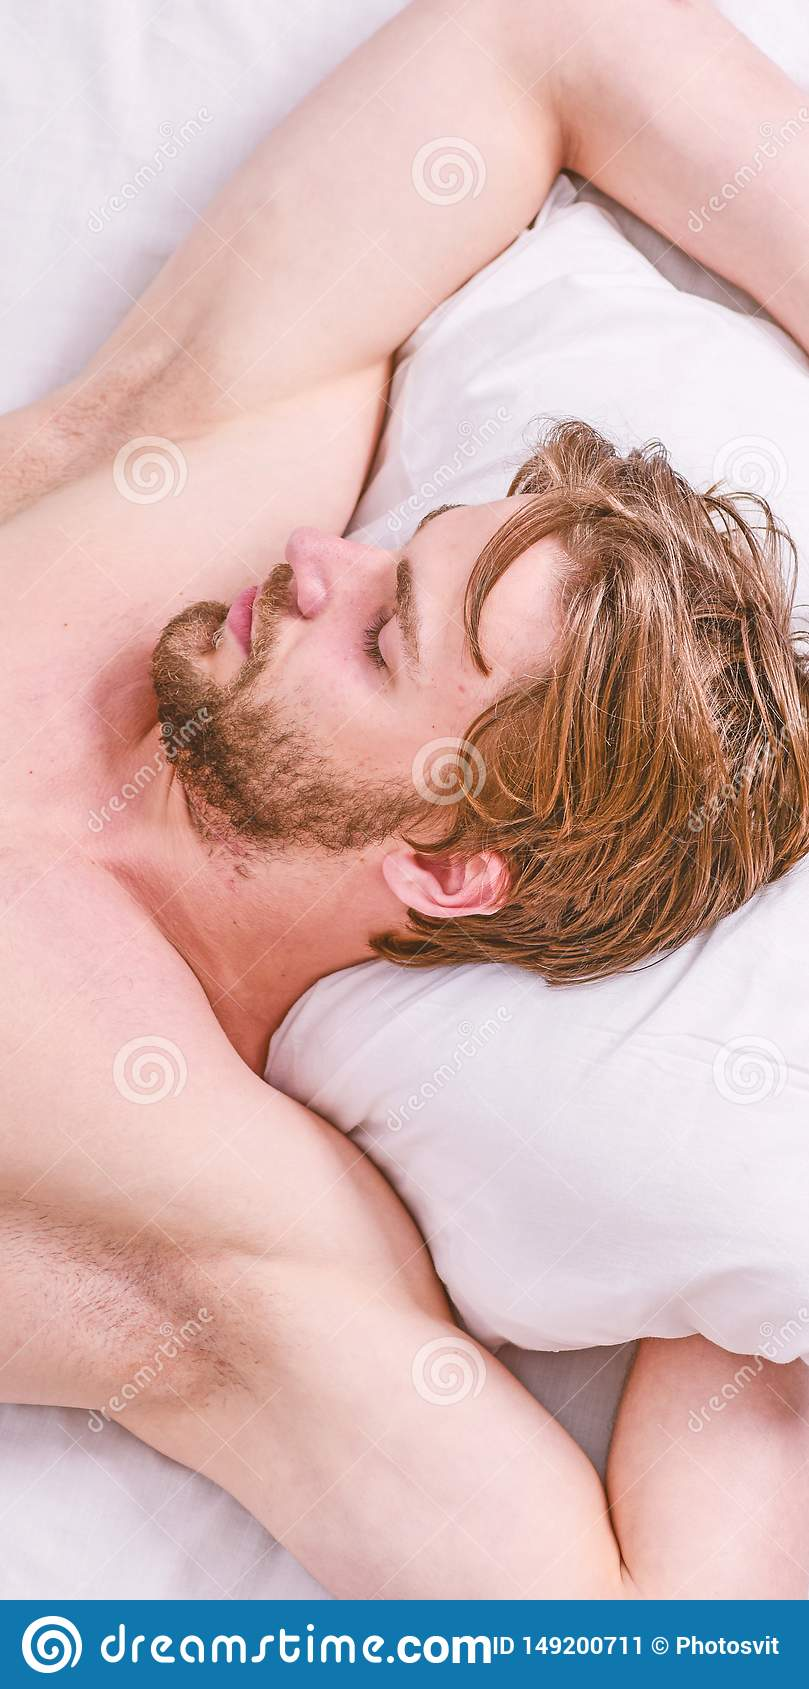 Expert tips on sleeping better. Bearded man sleeping face relaxing on pillow. How much sleep you actually need. Man